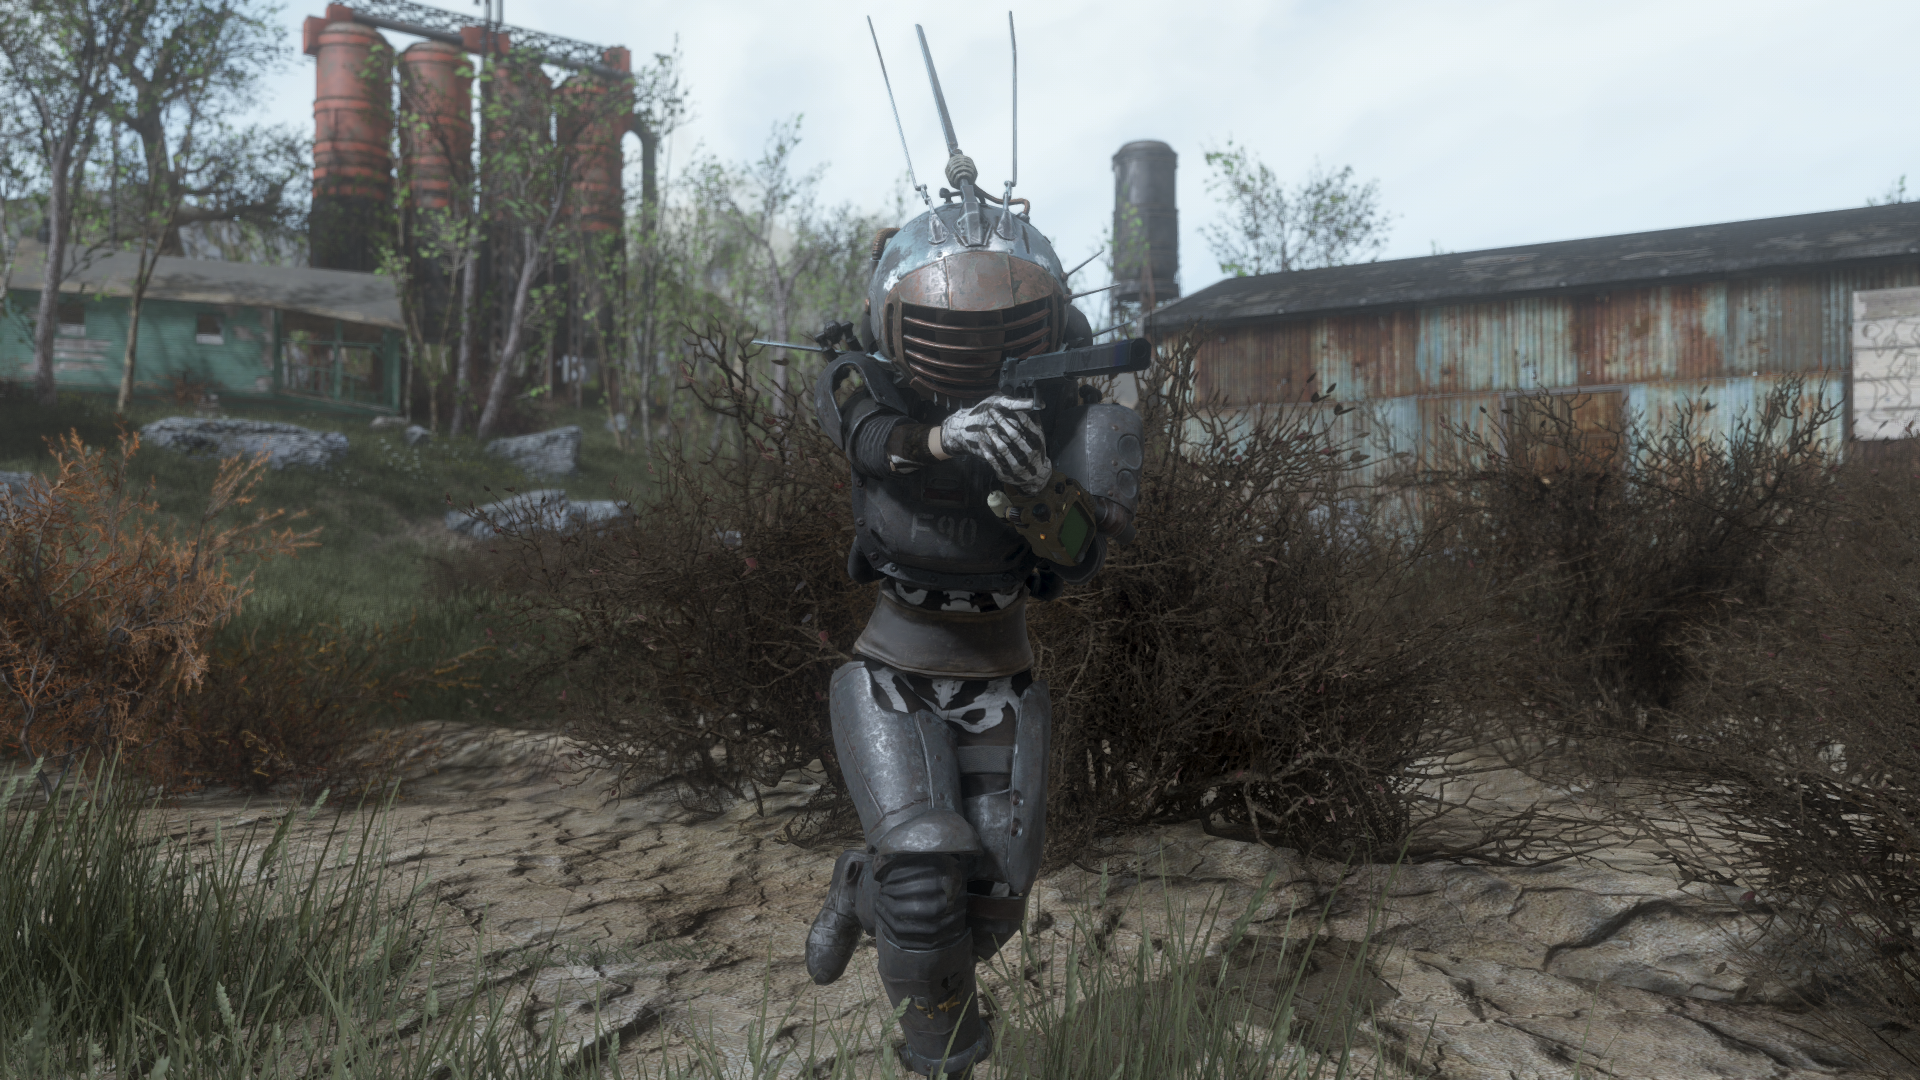 Pin by Scarlet Nossna on Fallout 4 | Fallout 4 mods, Fallout, Fall out 4